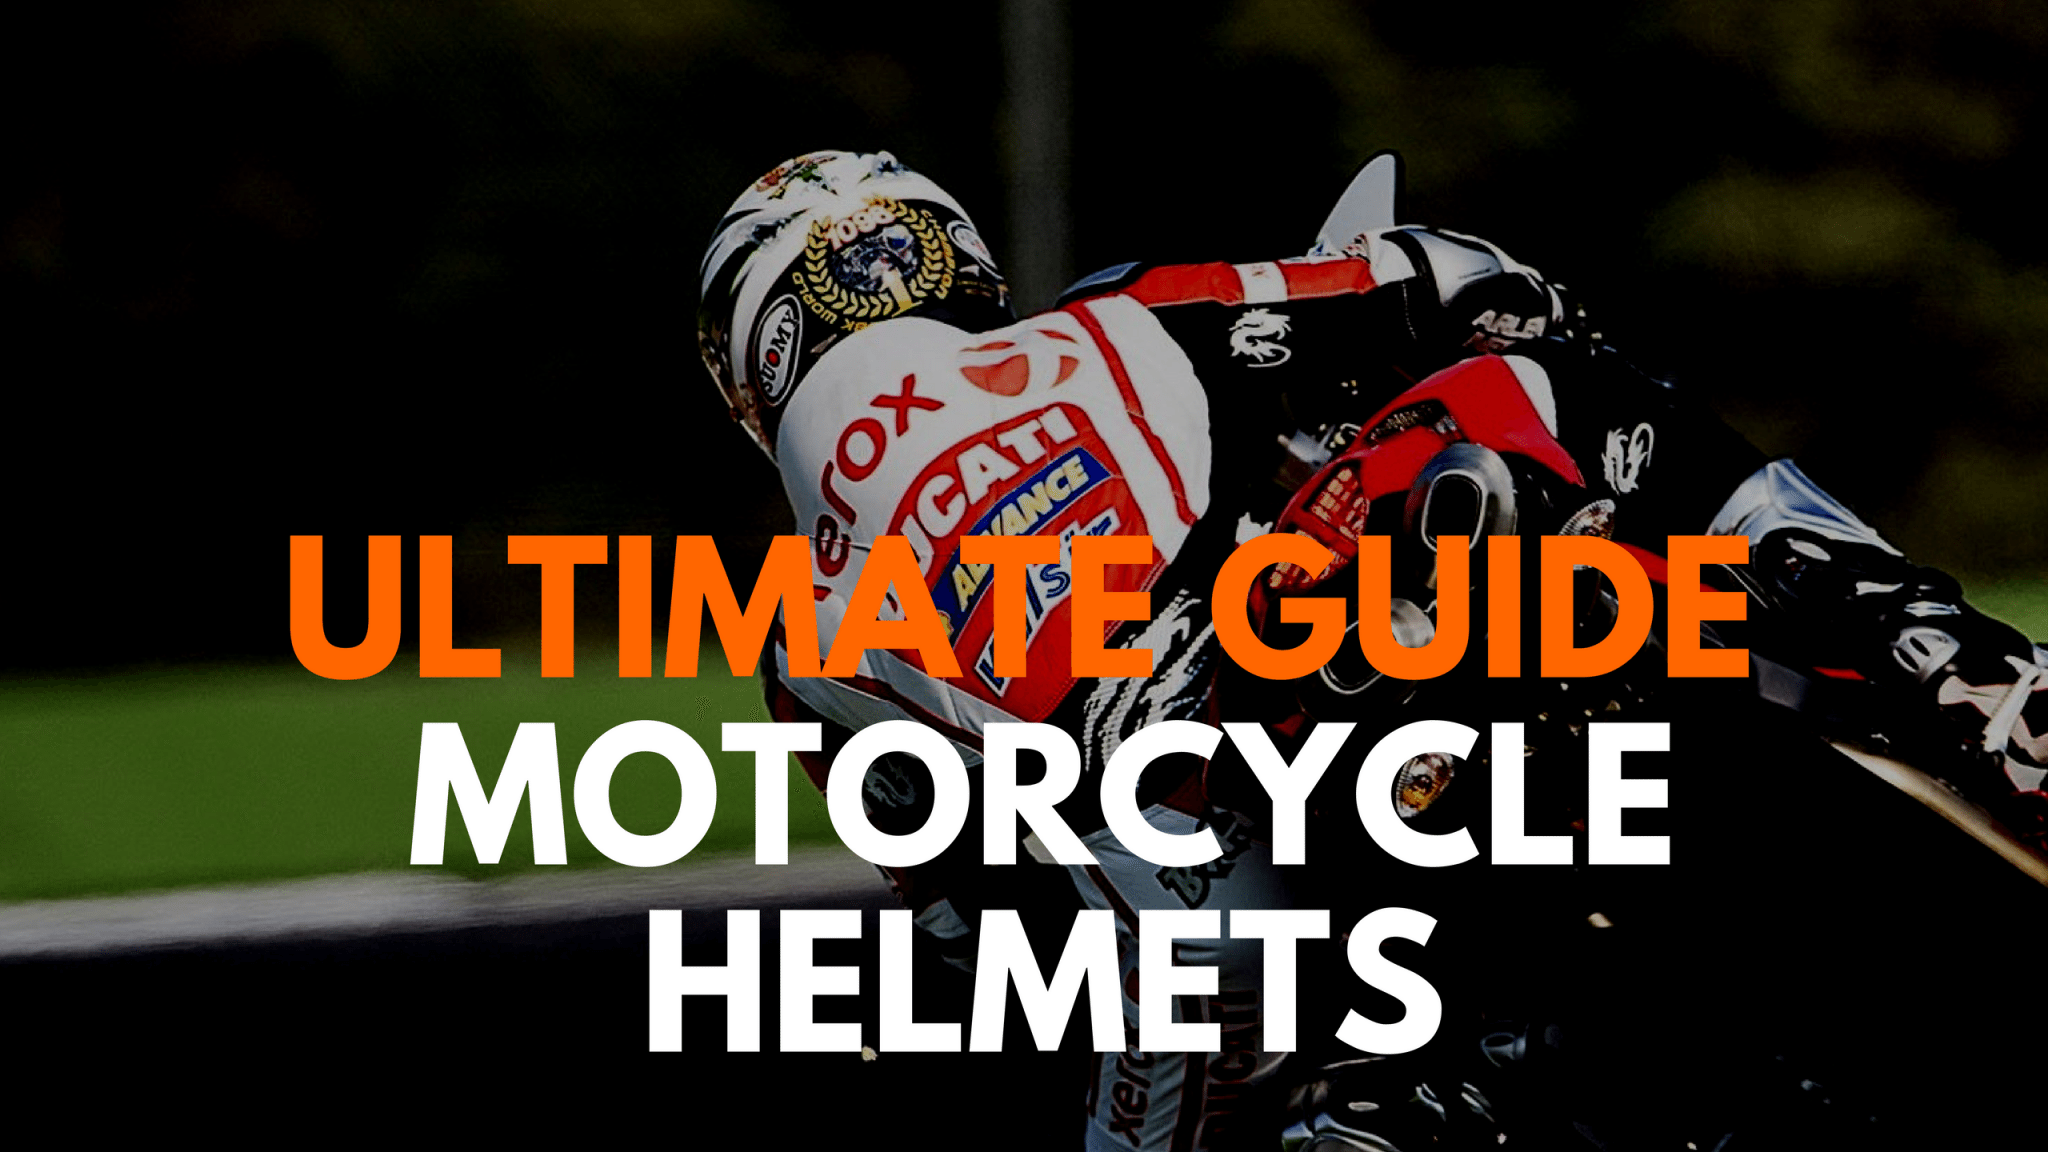 ultimate guide motorcycle helmets